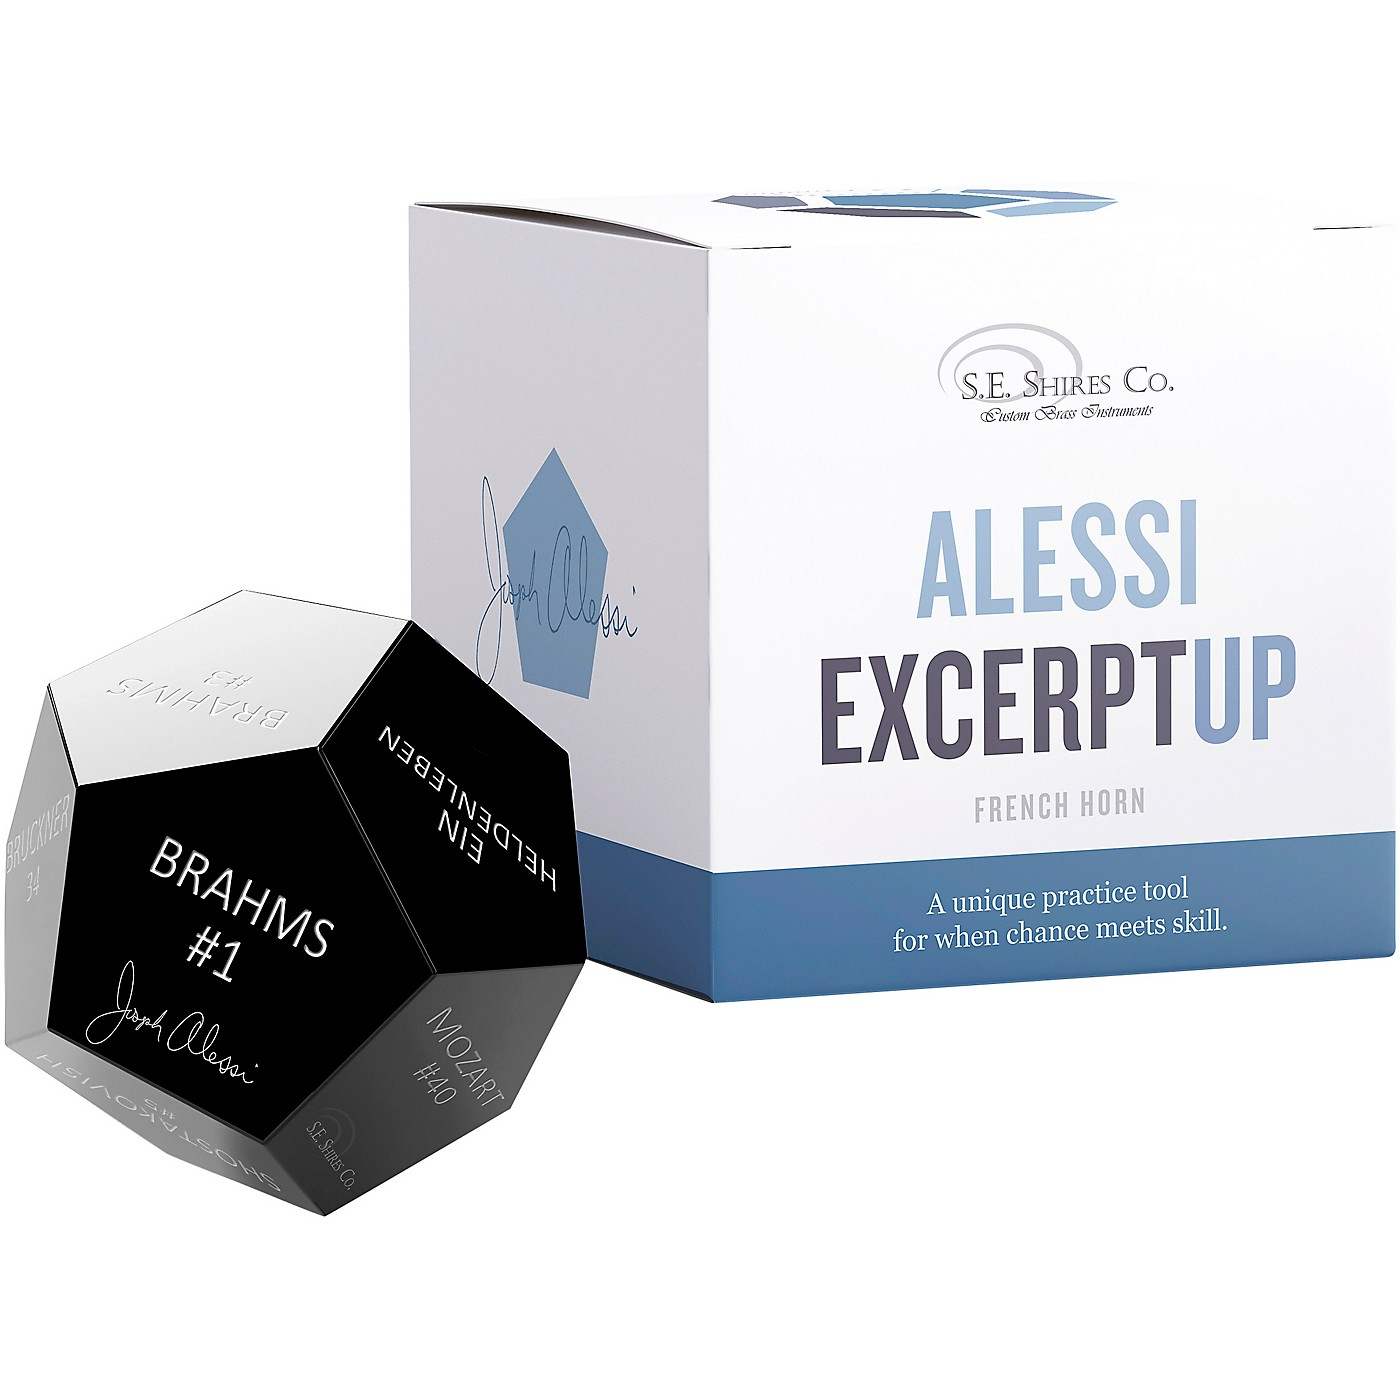 S.E. SHIRES Alessi ExcerptUP Practice Tool for French Horn thumbnail